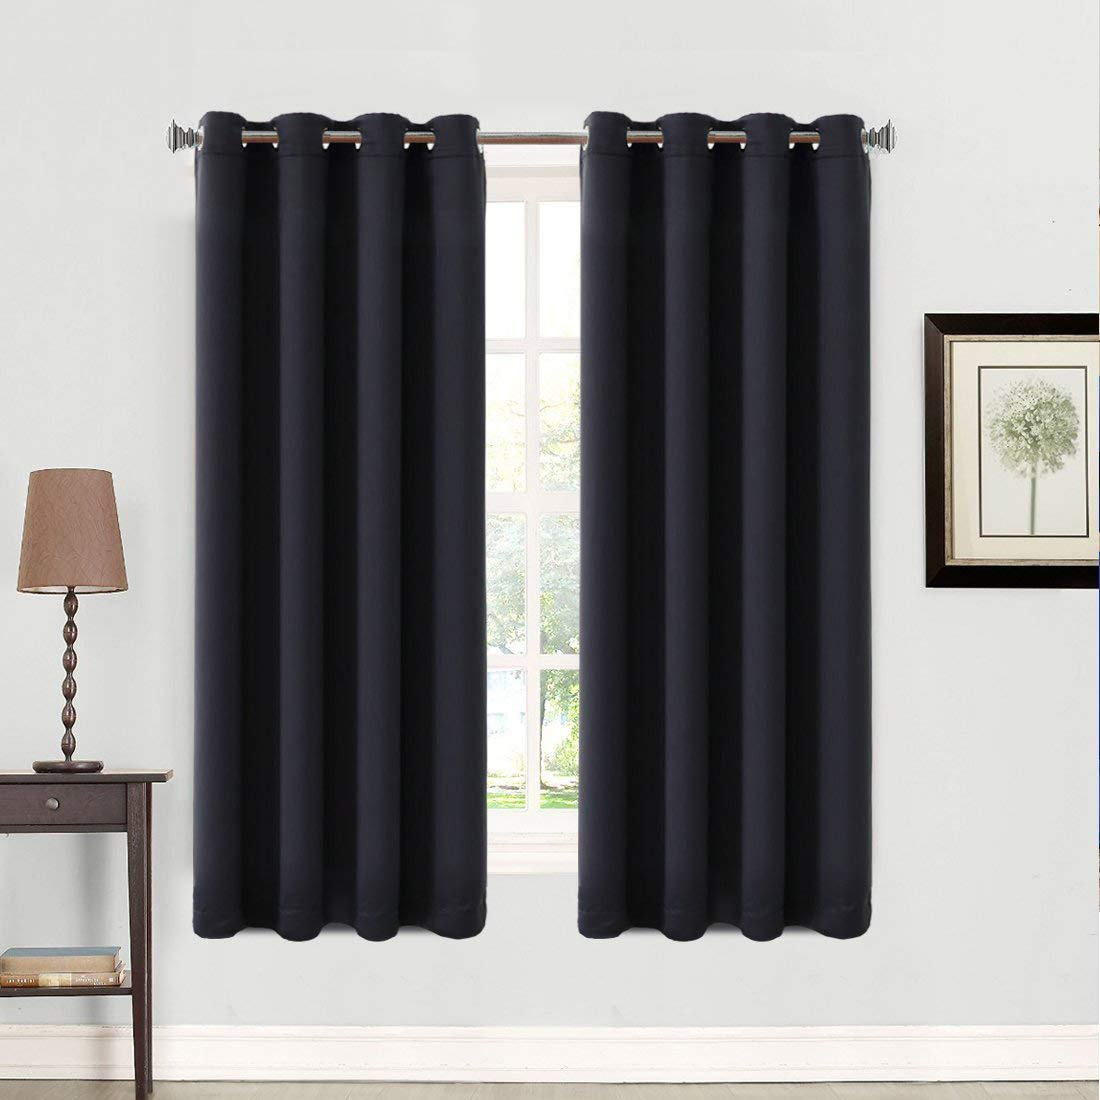 Balichun 99% Blackout 2 Panels Curtains Thermal Insulated Grommets Drapes for Bedroom 52 by 63 Inch Black